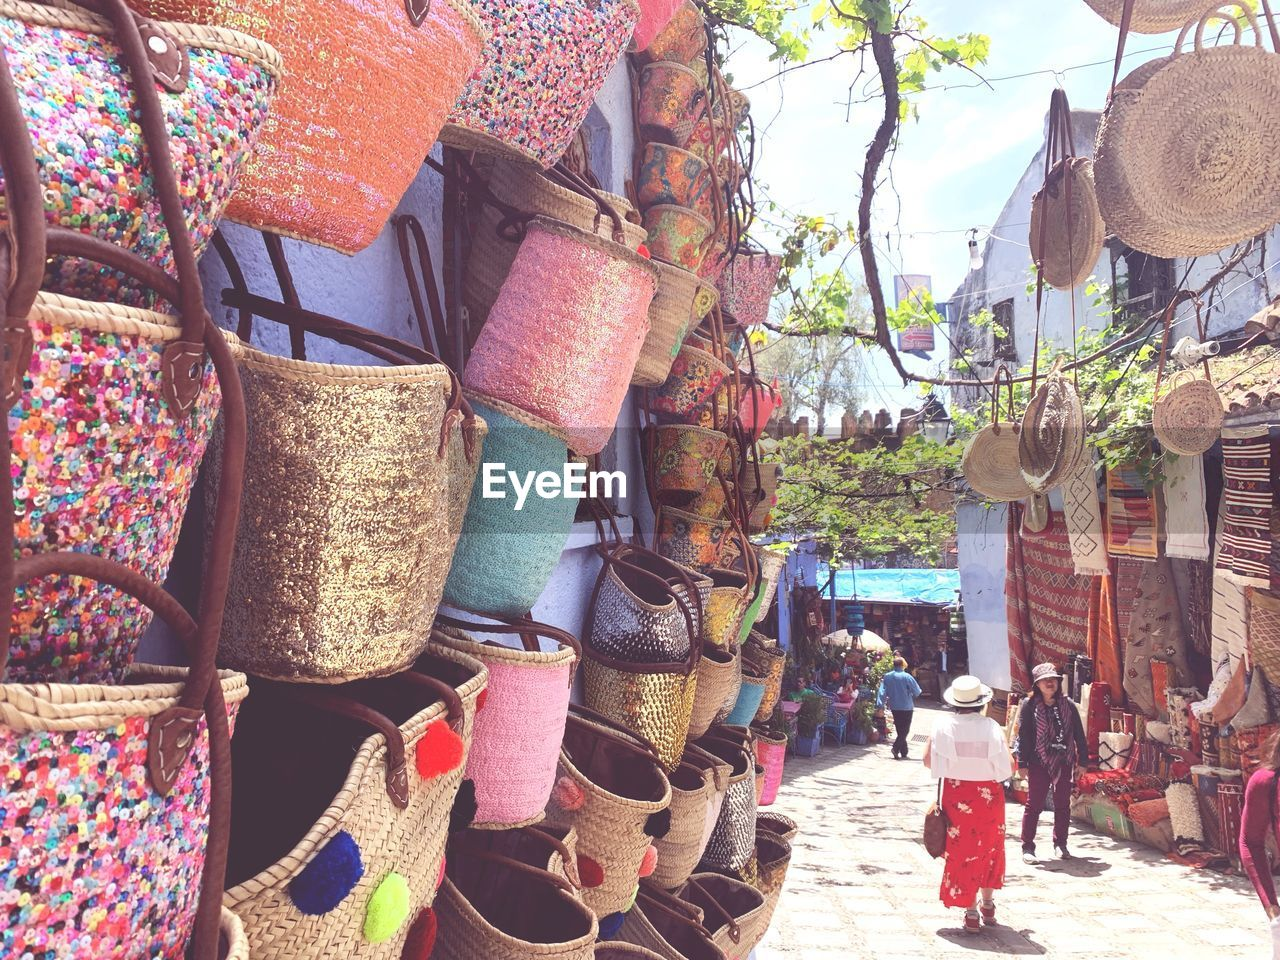 market, for sale, retail, day, choice, market stall, variation, hanging, architecture, building exterior, outdoors, built structure, small business, large group of objects, incidental people, nature, retail display, group, clothing, sale